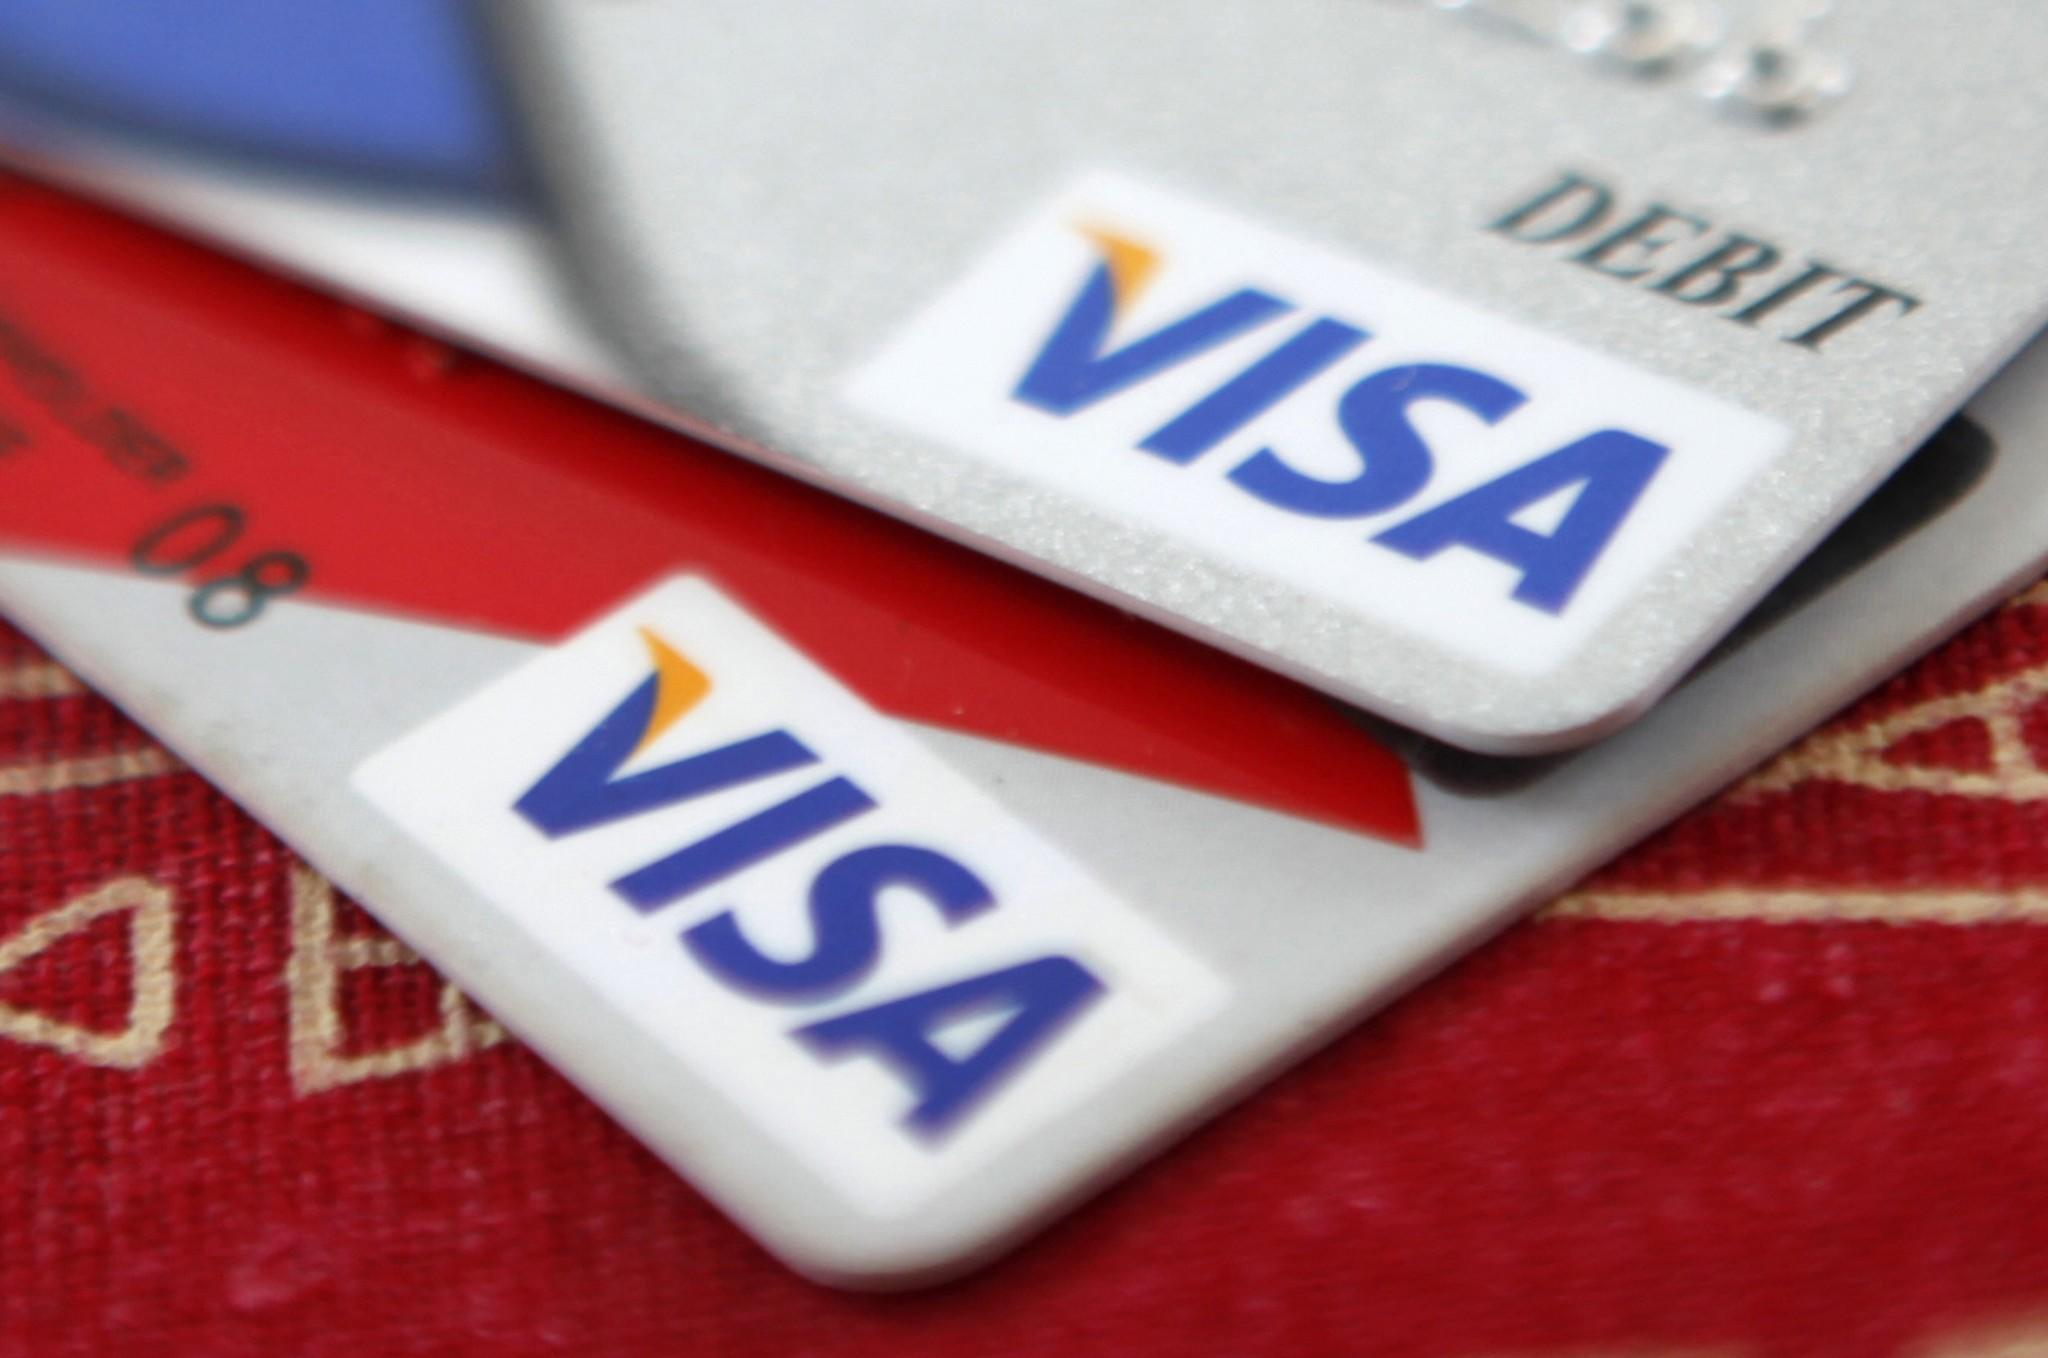 Visa credit cards are displayed in Washington in this October 27, 2009 file photo.